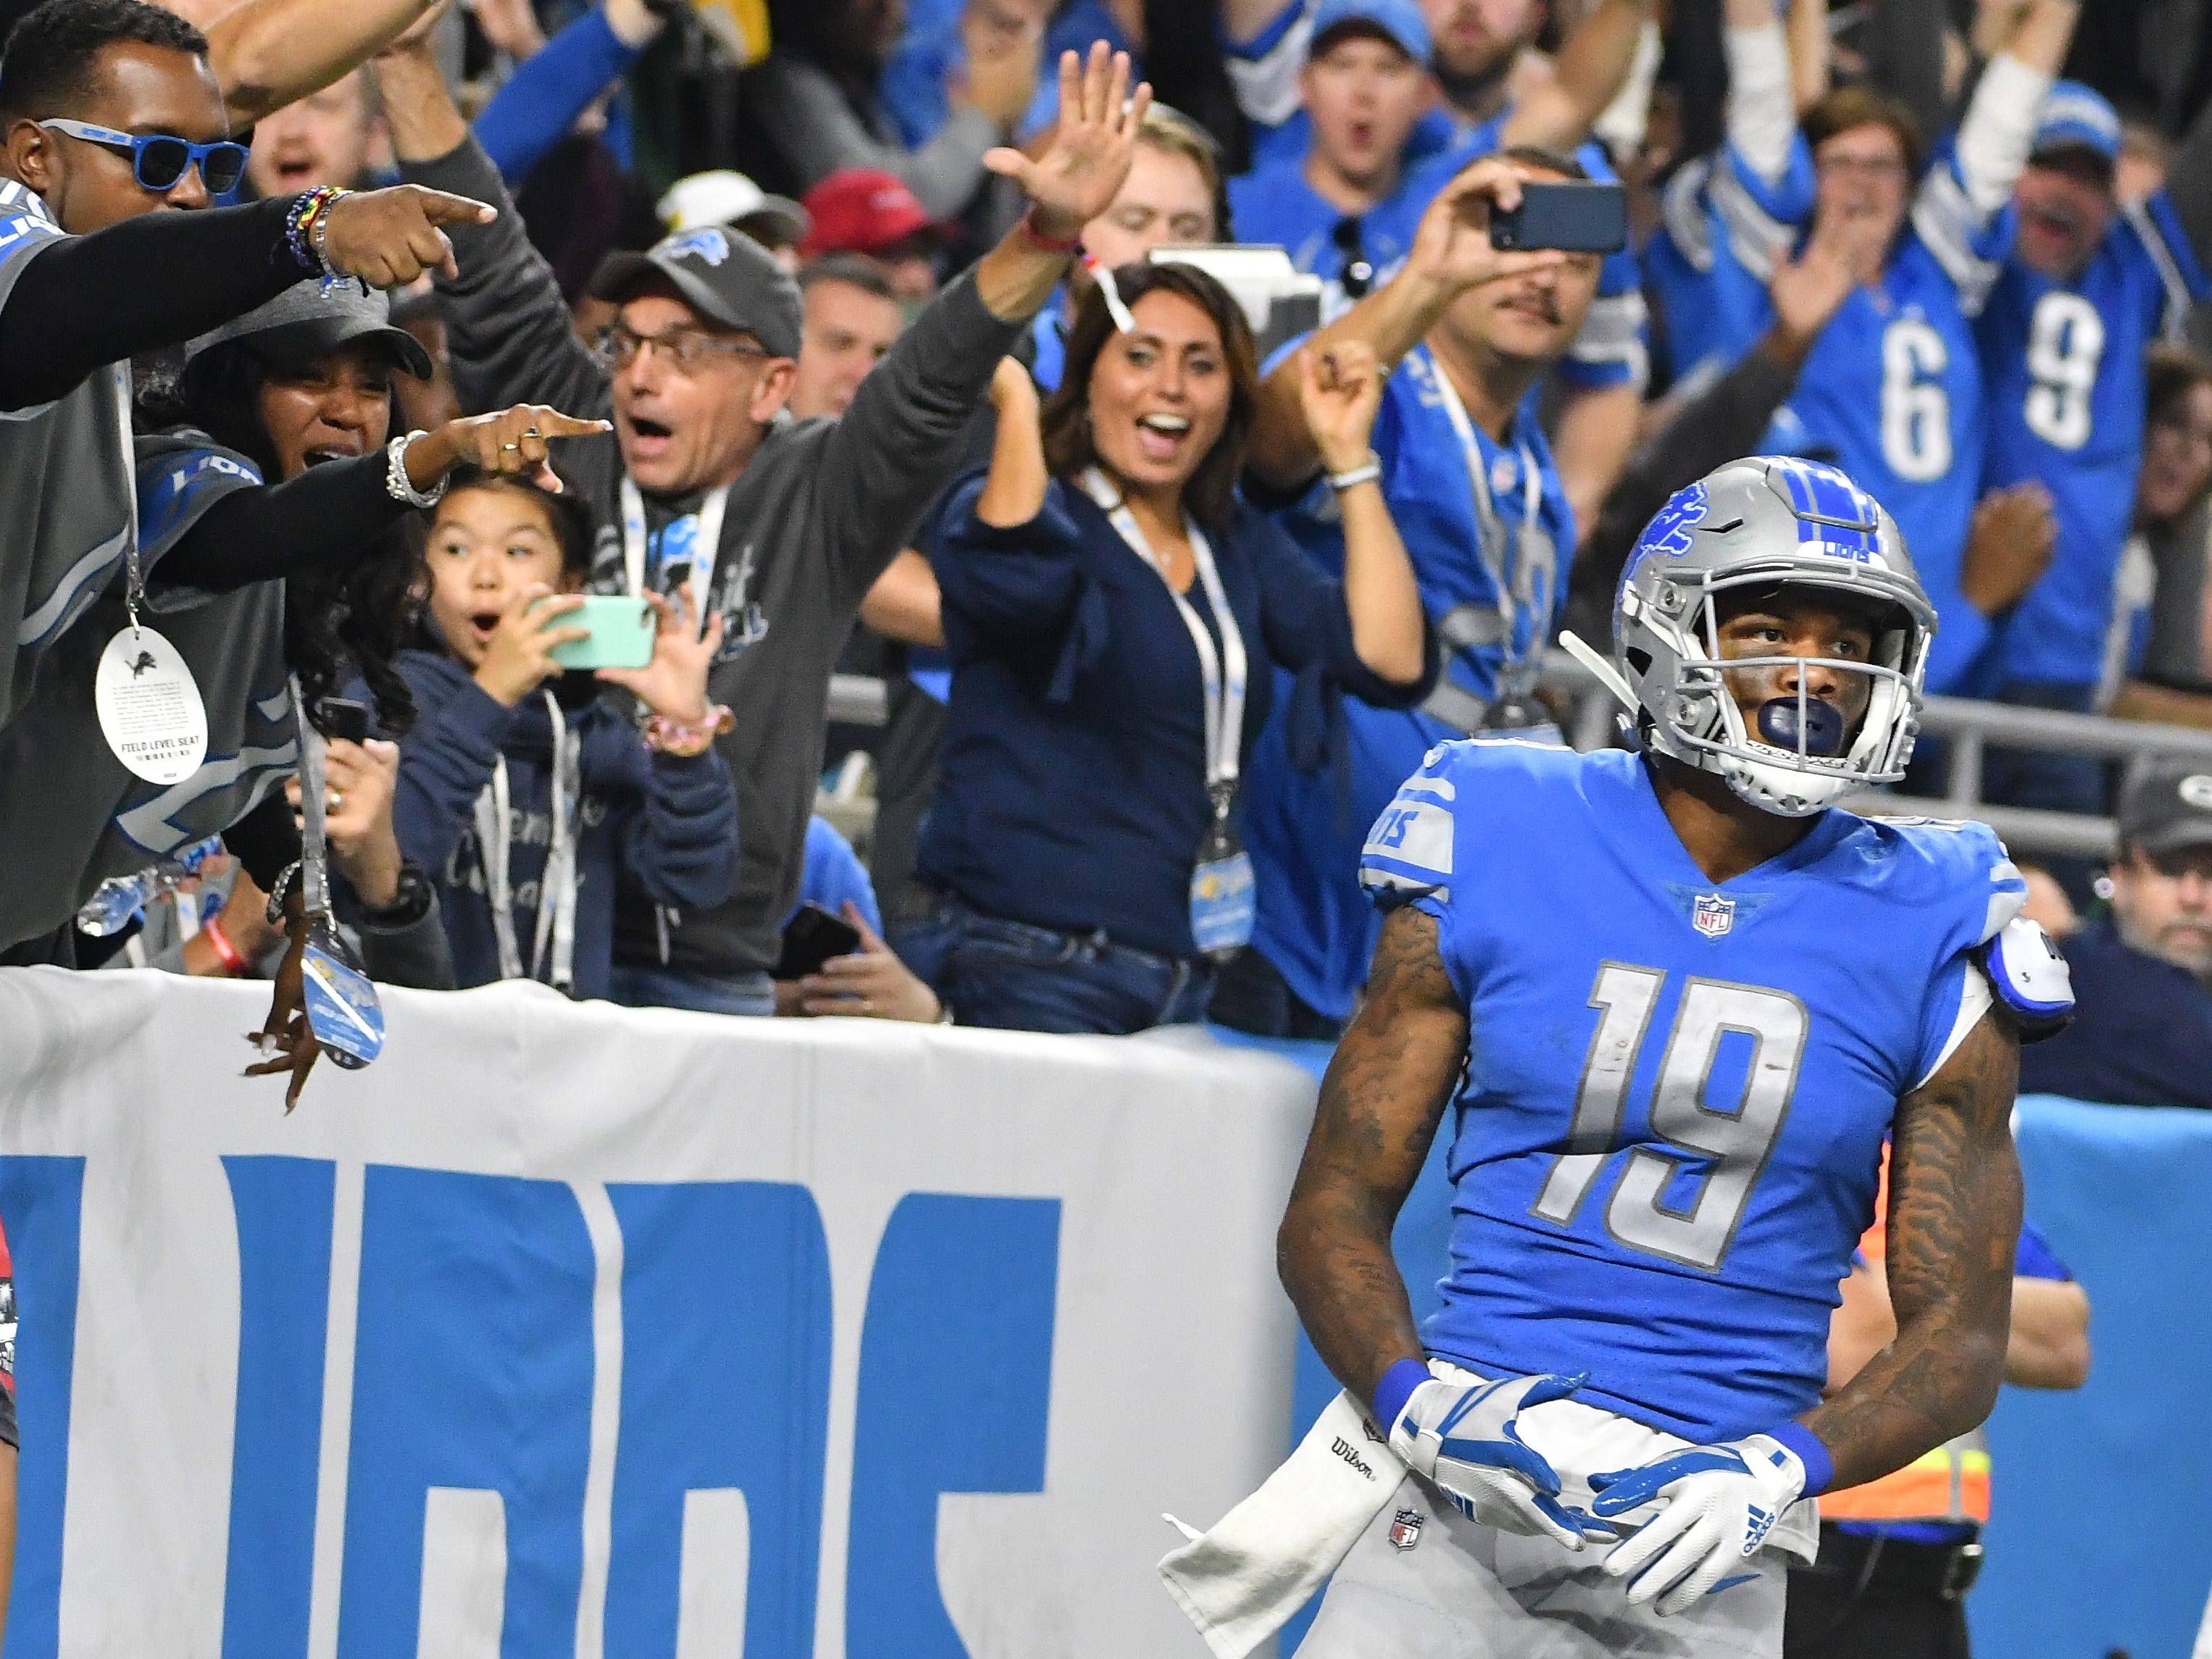 Fans celebrate as Lions wide receiver Kenny Golladay puts another 6 points on the board, this time in the fourth quarter.